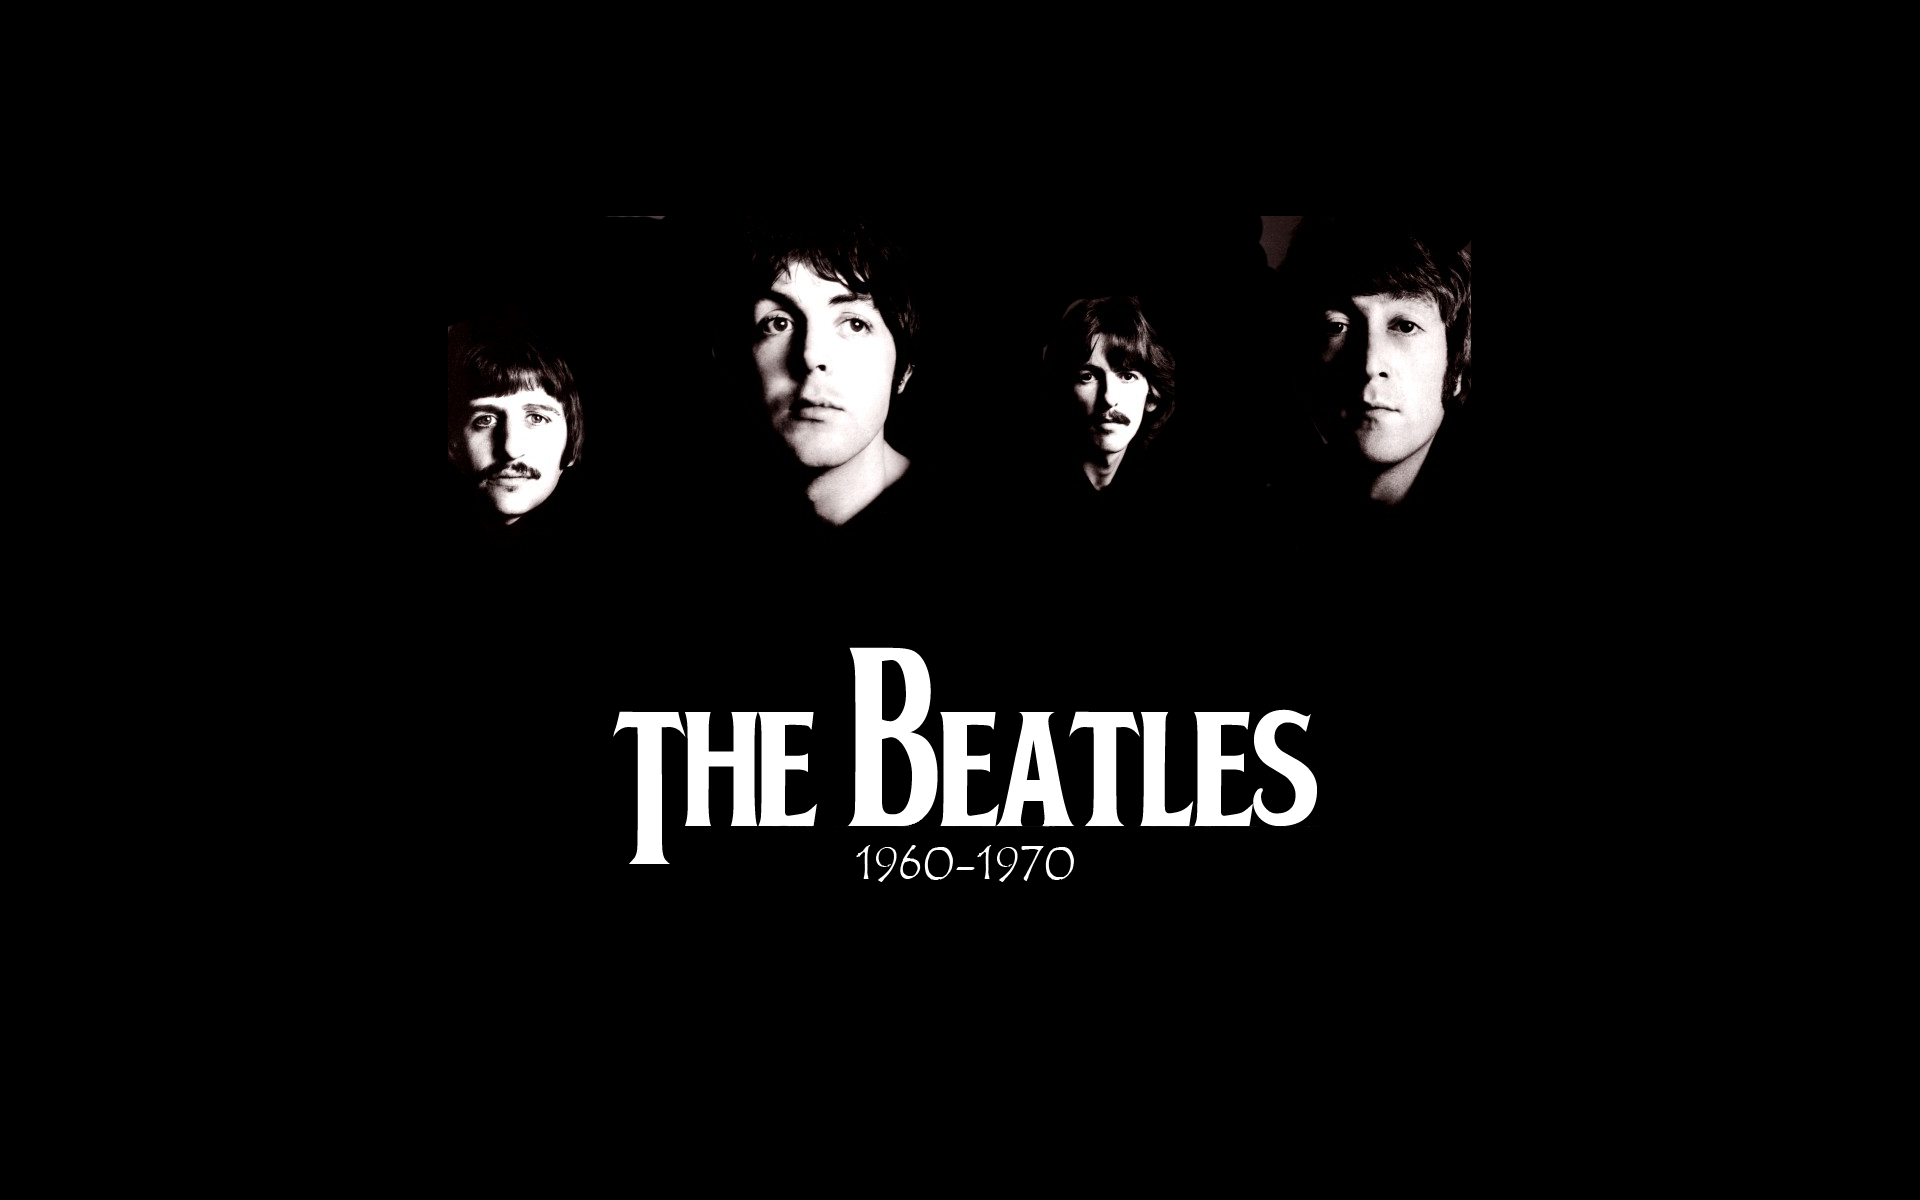 The Beatles Wallpapers - Wallpaper Cave